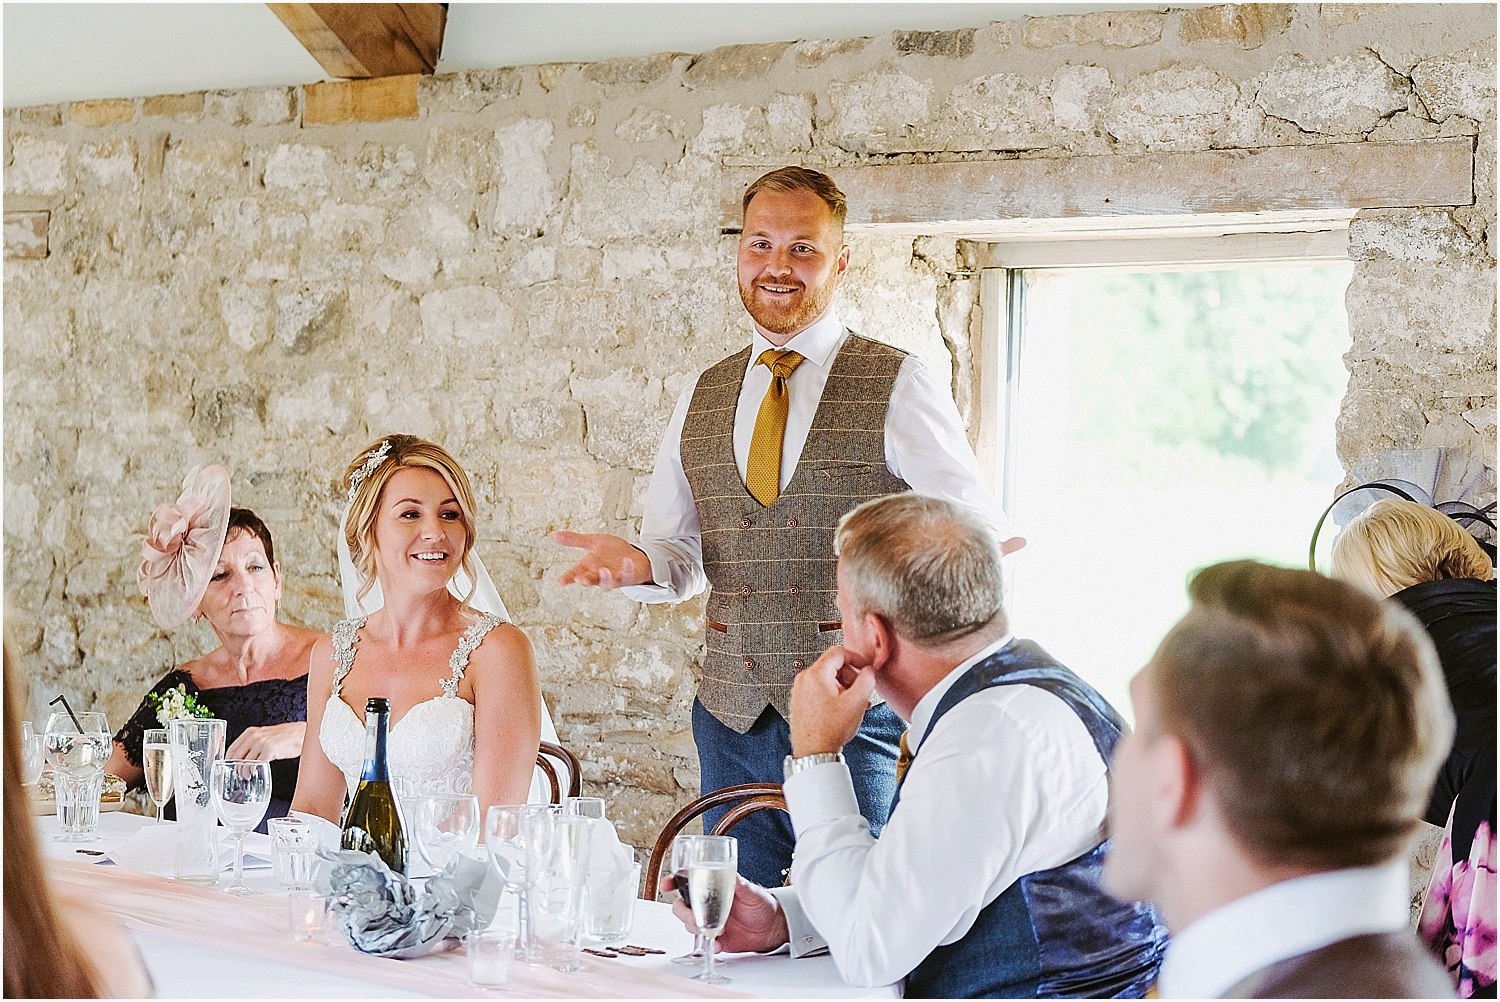 Wedding at Healey Barn - wedding photography by www.2tonephotography.co.uk 076.jpg